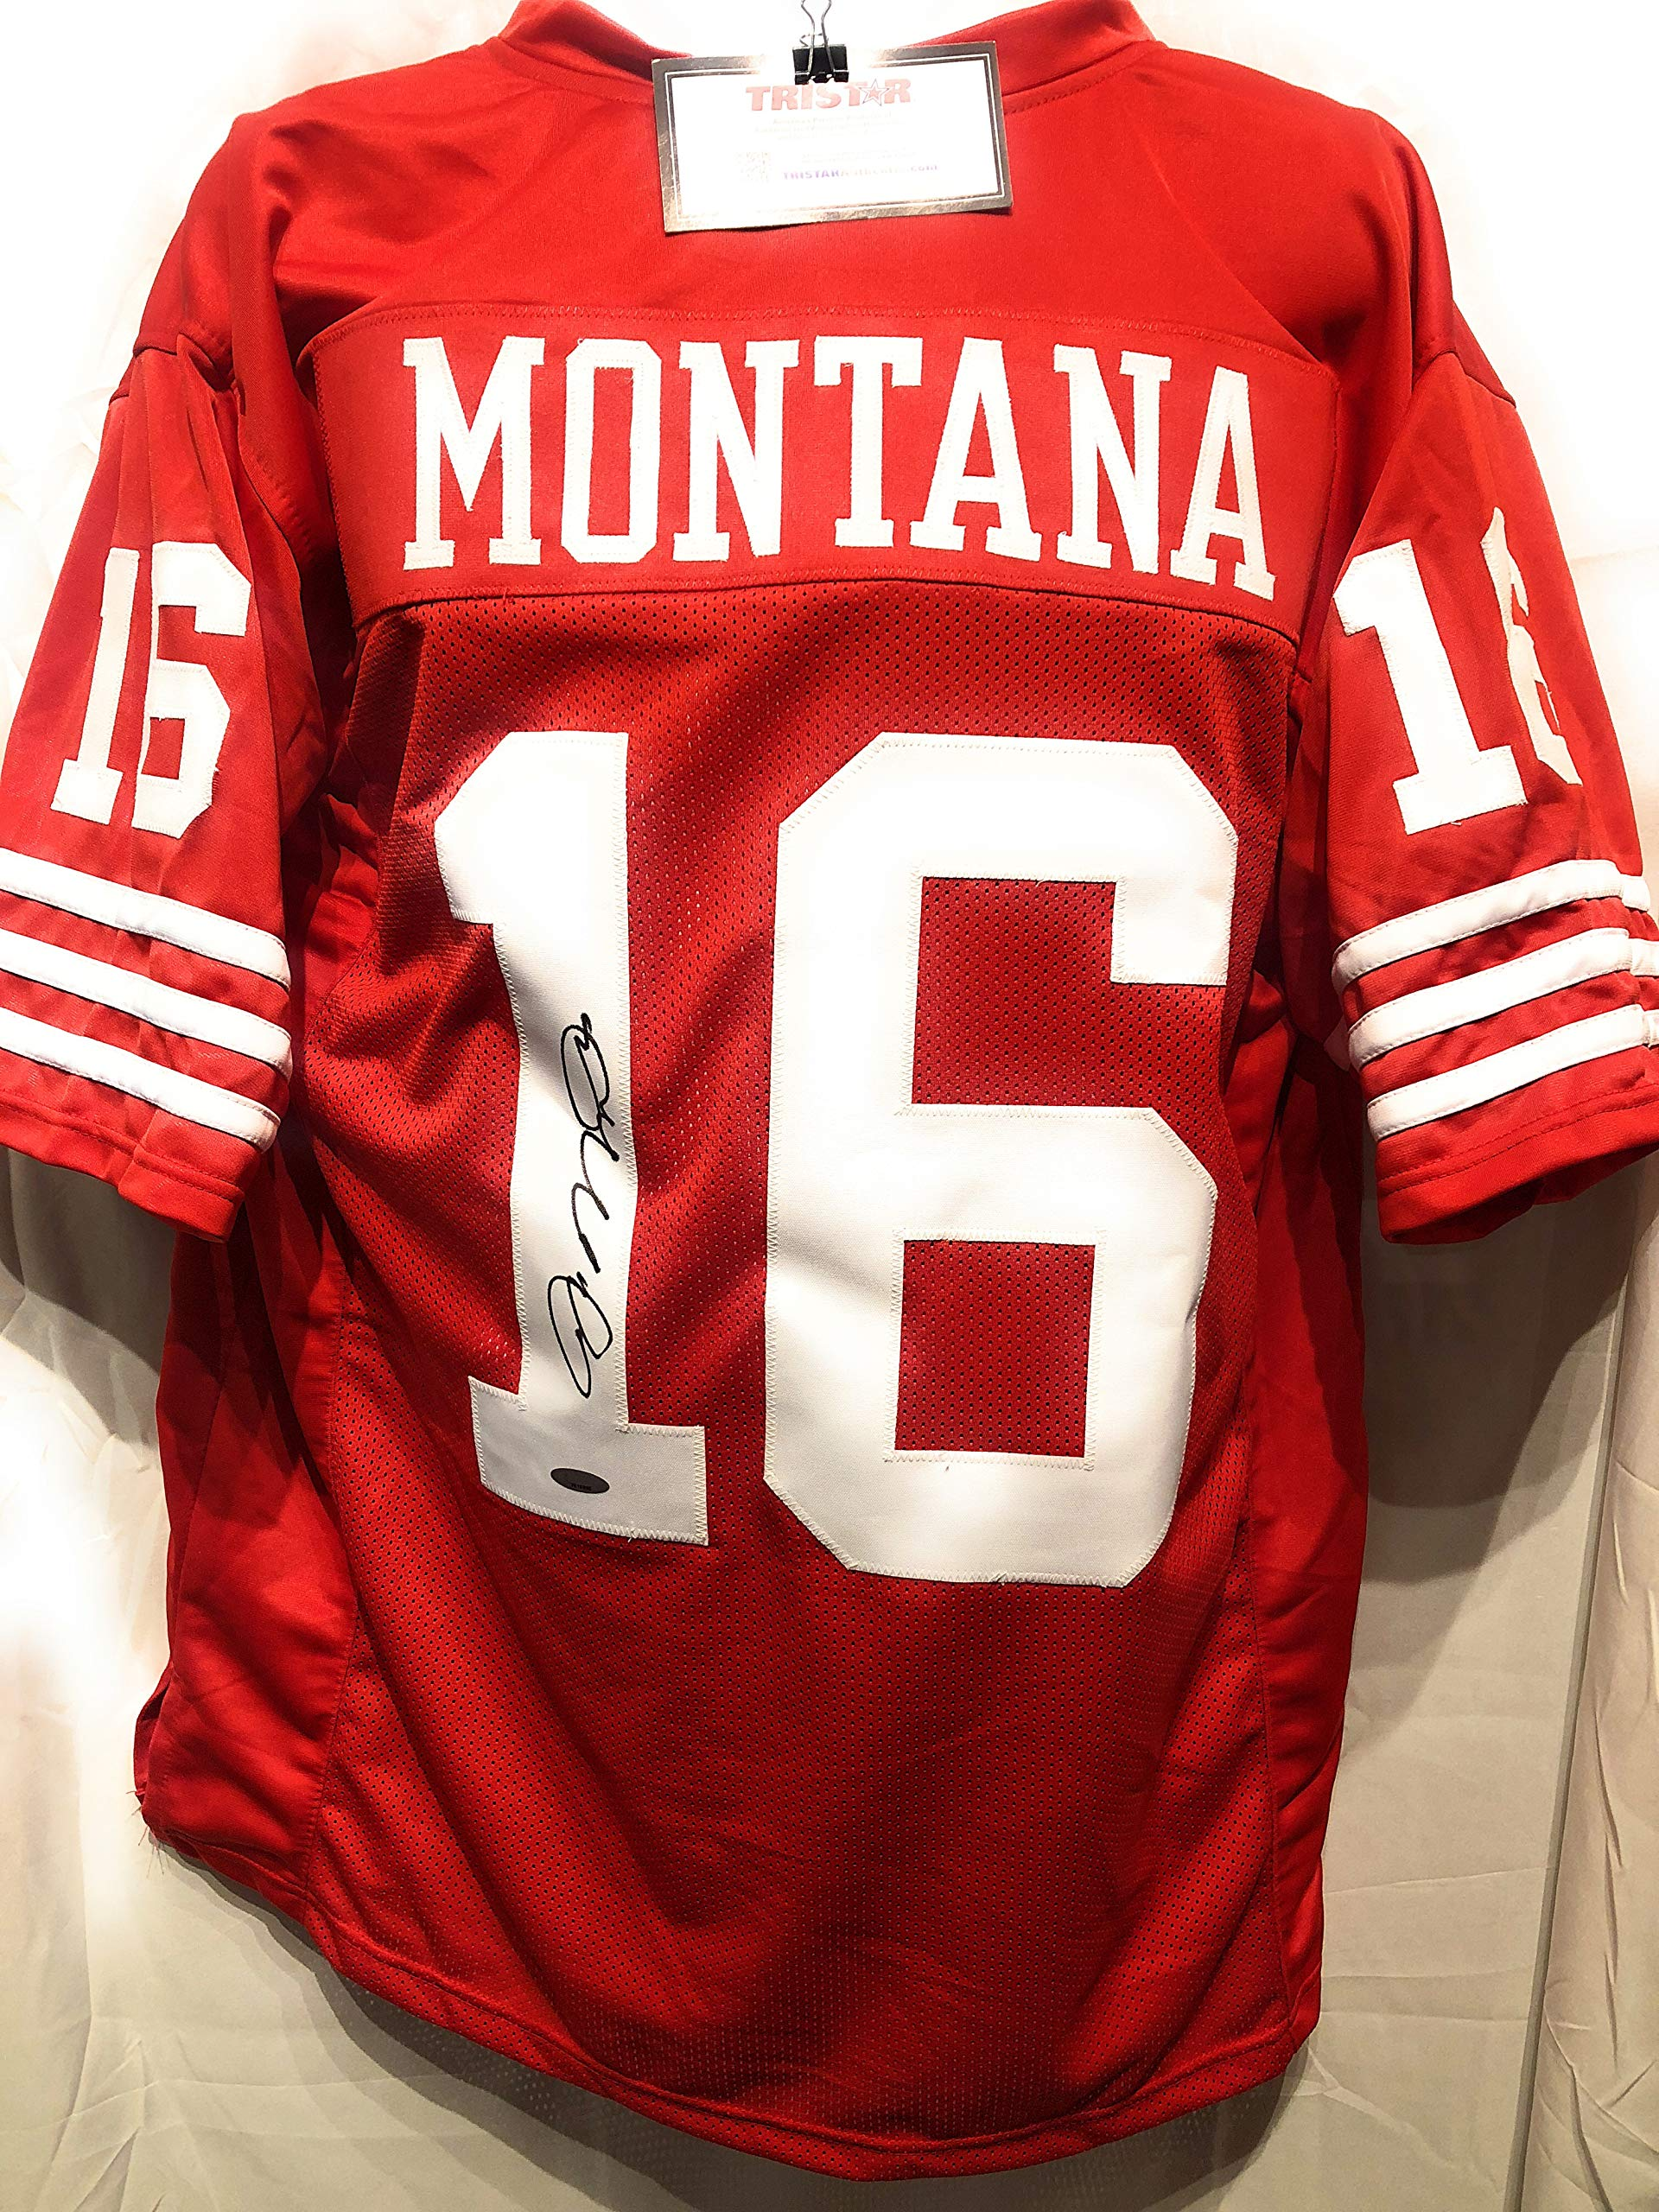 Joe Montana San Fransico 49ers Signed Autograph Custom Jersey Tristar Authentic Certified